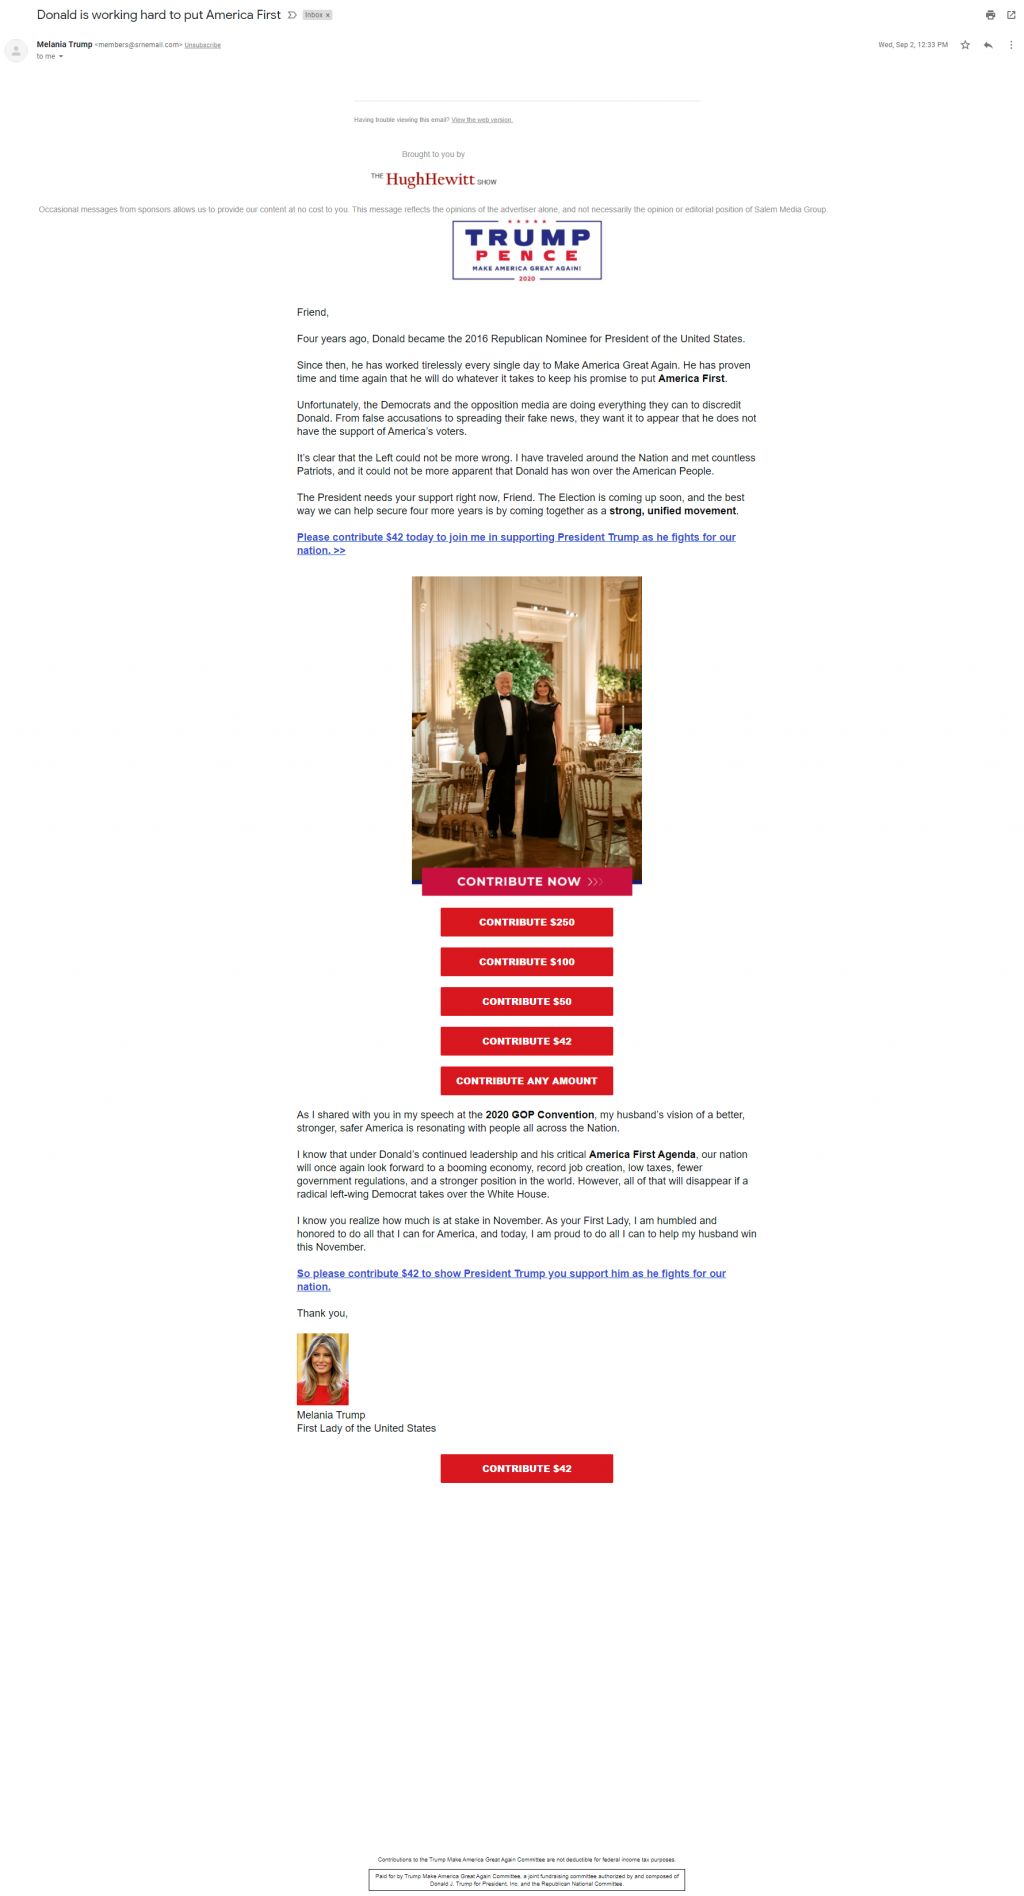 An image of The Hugh Hewitt Show's Trump Make America Great Again Committee email on September 2